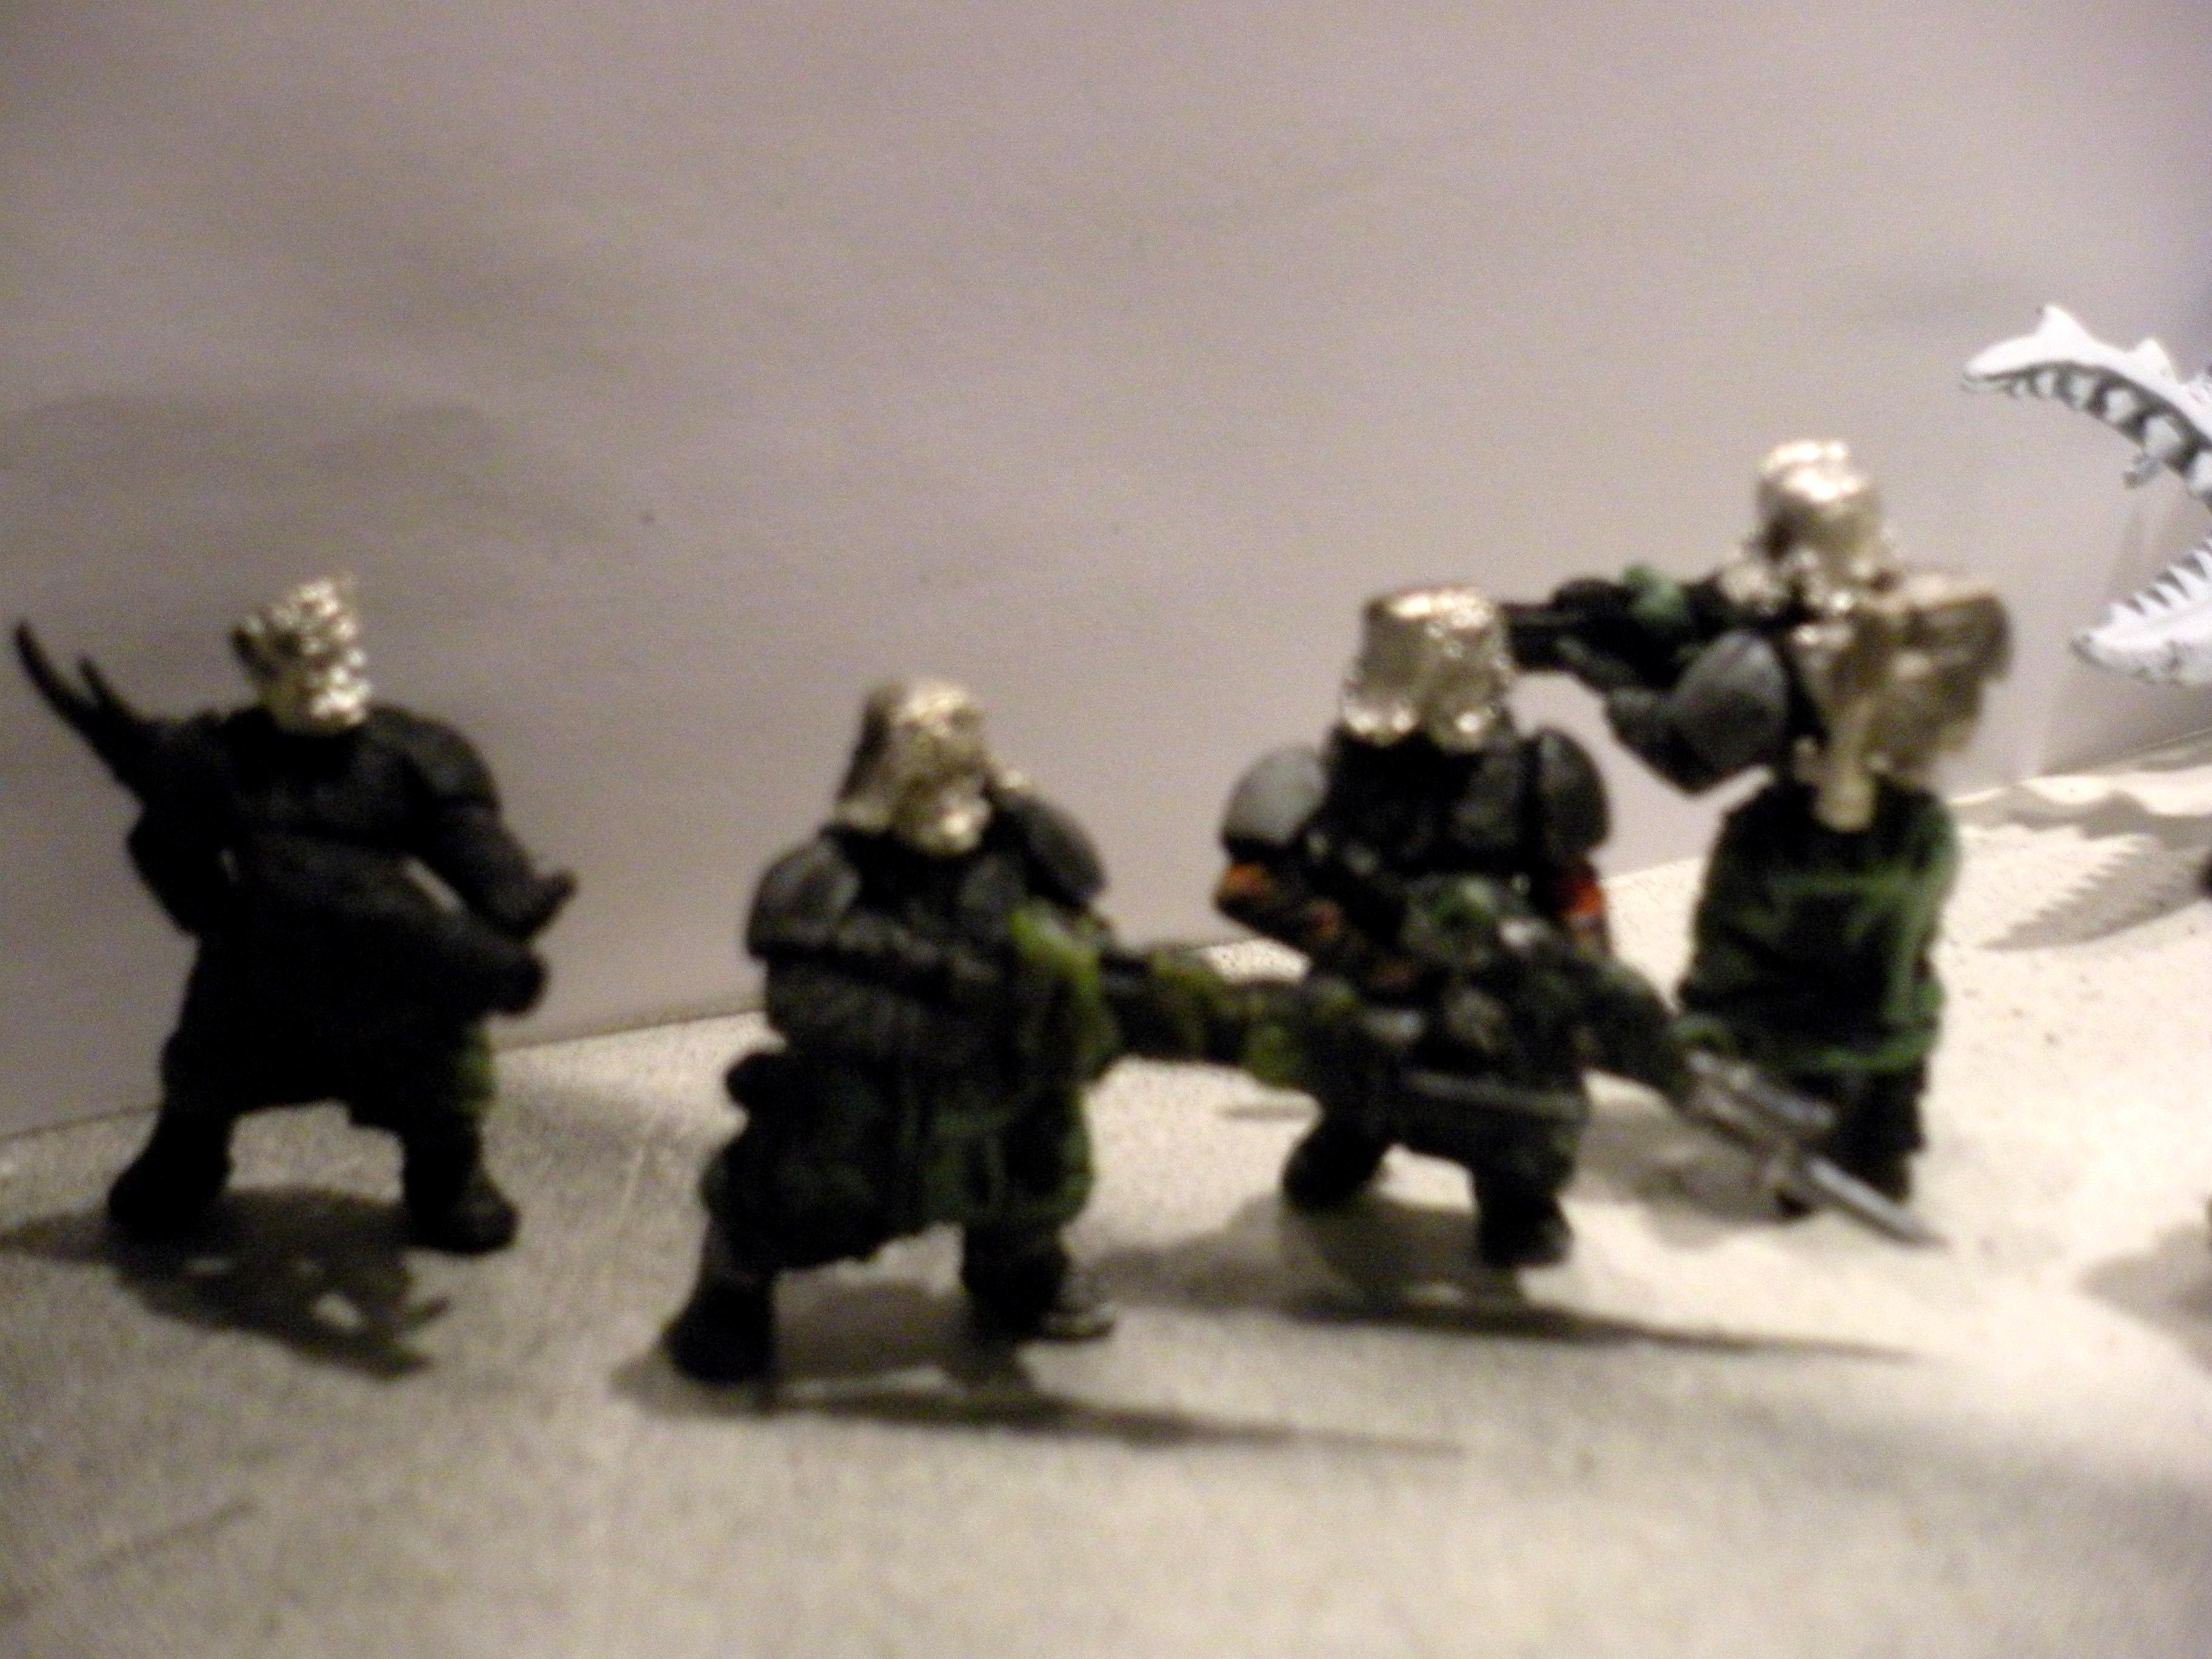 Blurred Photo, Chaos, Conversion, Imperial Guard, Pig Iron, Work In Progress